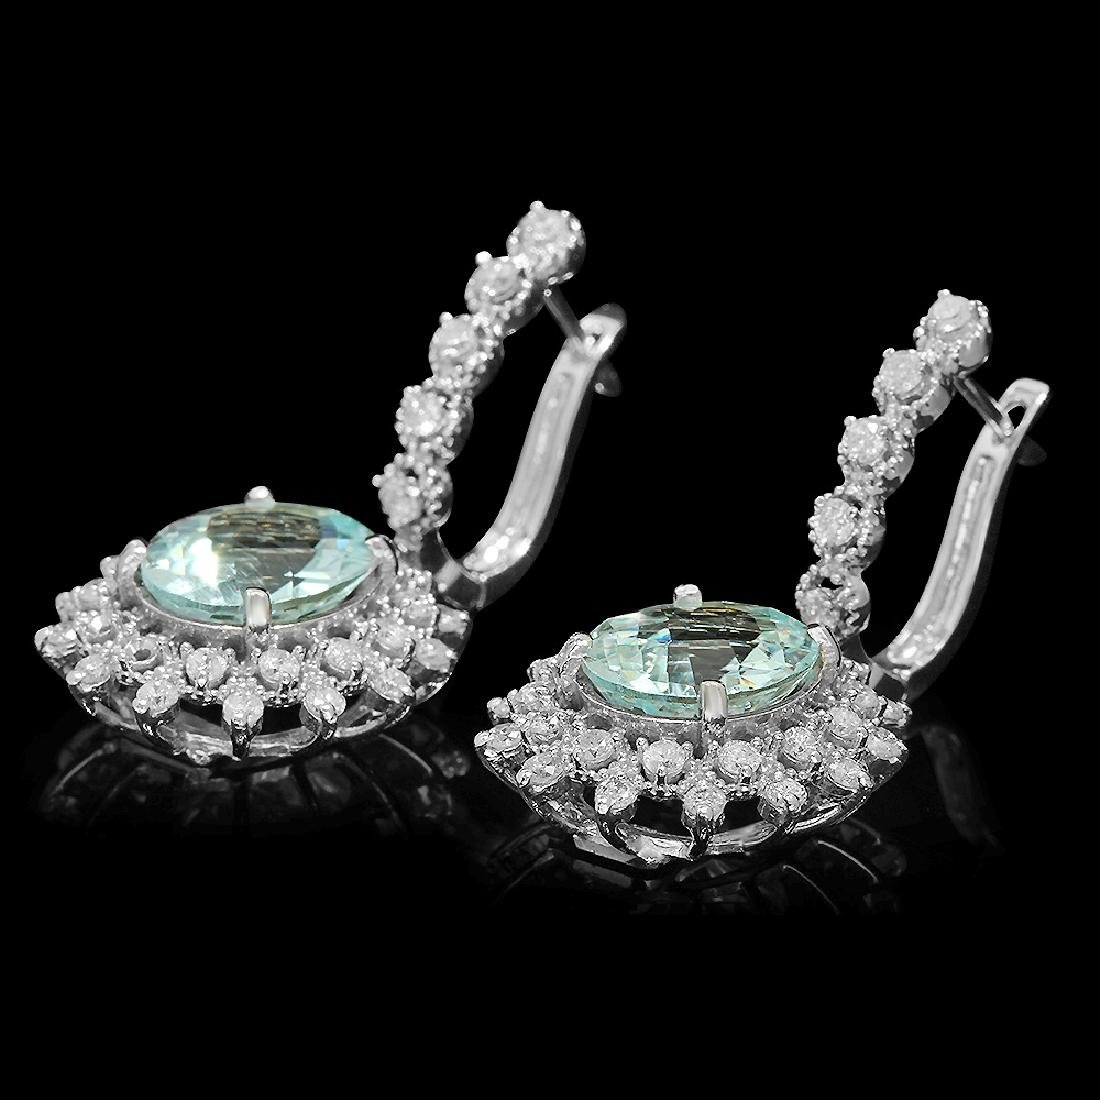 14K Gold 6.28ct Aquamarine 1.60ct Diamond Earrings - 2